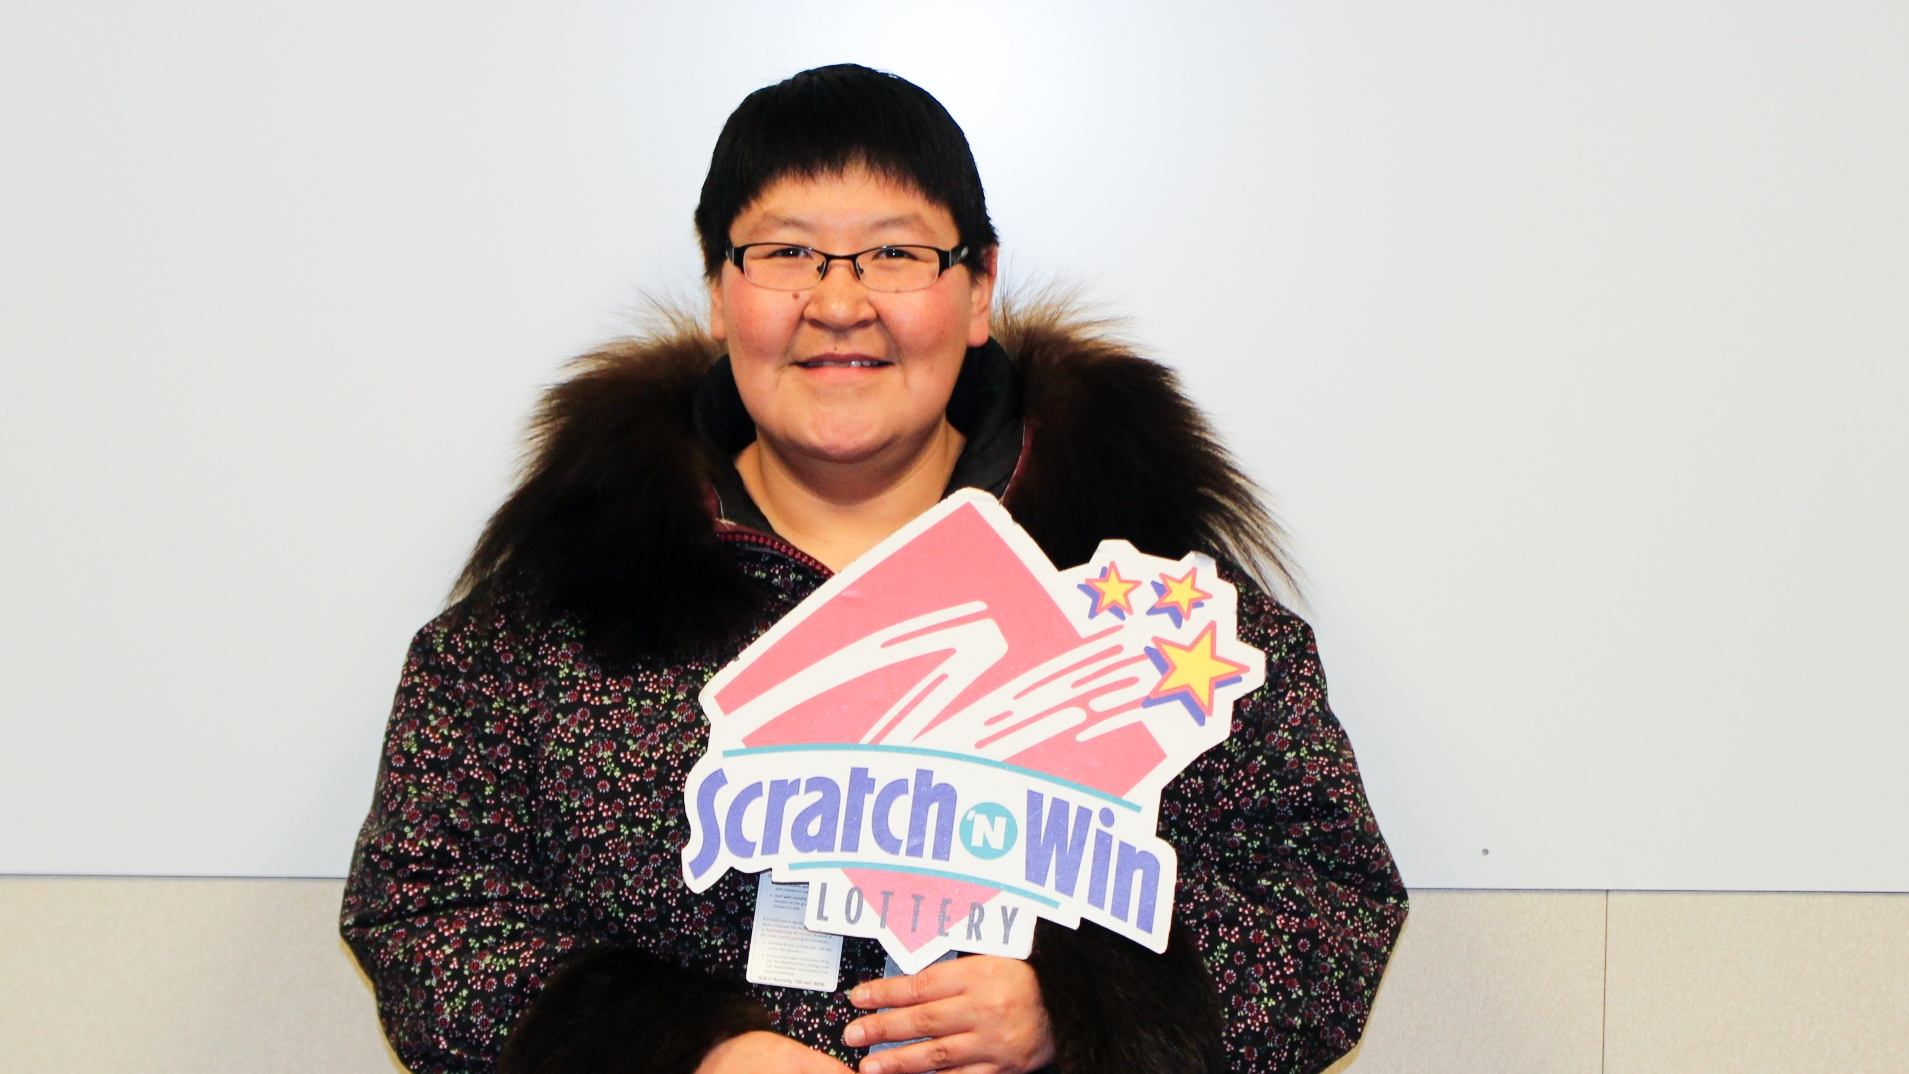 Delma Klengenberg is pictured celebrating her lottery win in a photo issued by the Western Canada Lottery Corporation.